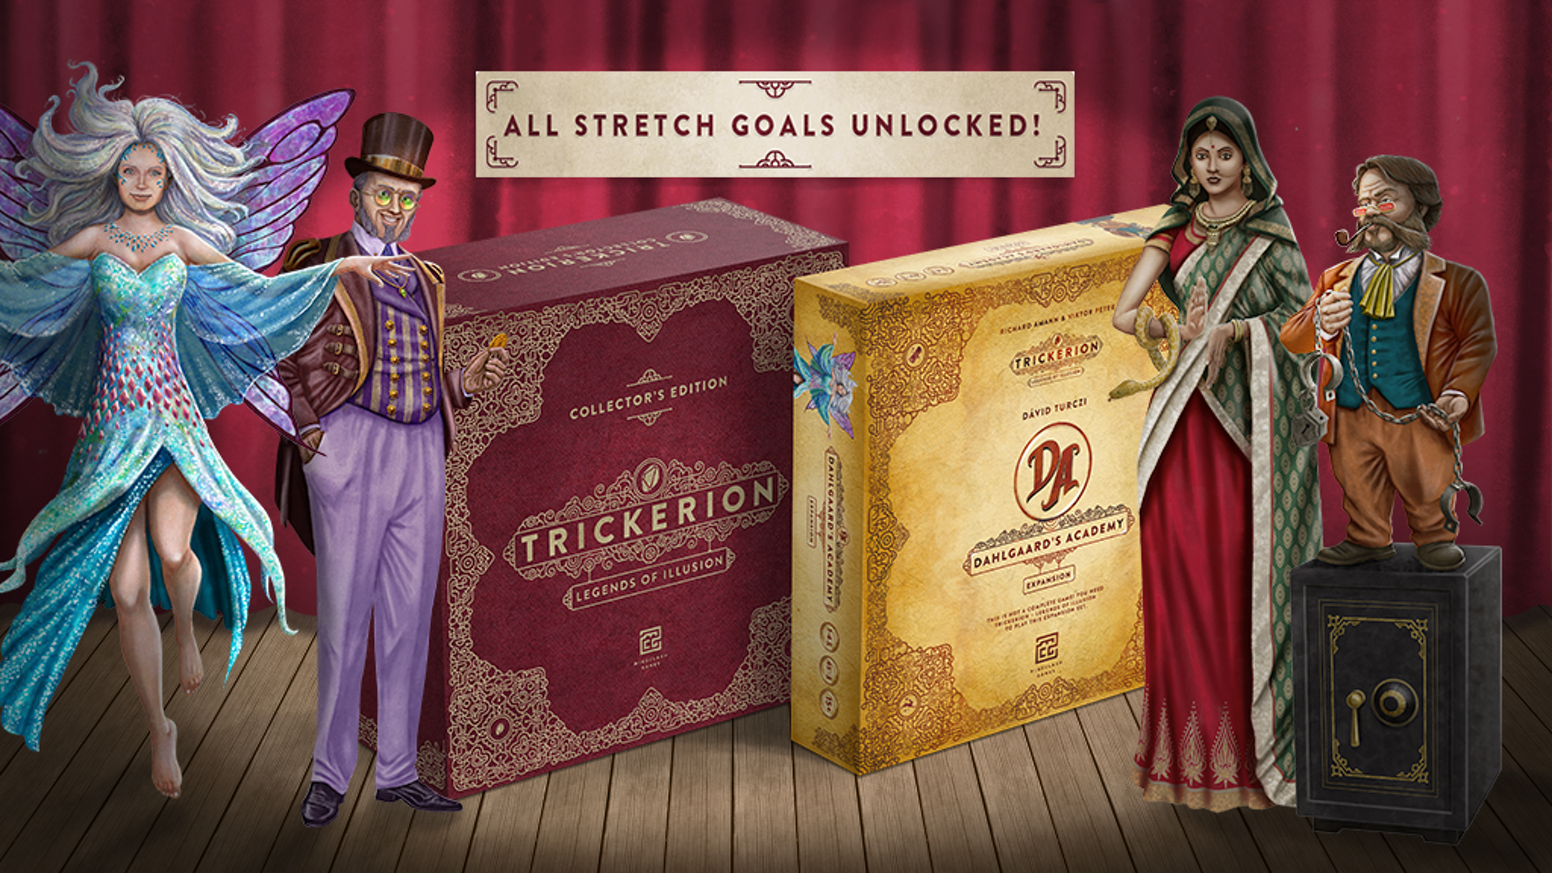 Trickerion – Dahlgaard's Academy and Collector's Edition is the top crowdfunding project launched today. Trickerion – Dahlgaard's Academy and Collector's Edition raised over $574367 from 6866 backers. Other top projects include GENKI: Bluetooth Audio for the Nintendo Switch, Elos Skateboard | Compact, stable, fun urban cruiser, MiKe & ode's Solarius Mission 2nd Edition (Deluxe)...